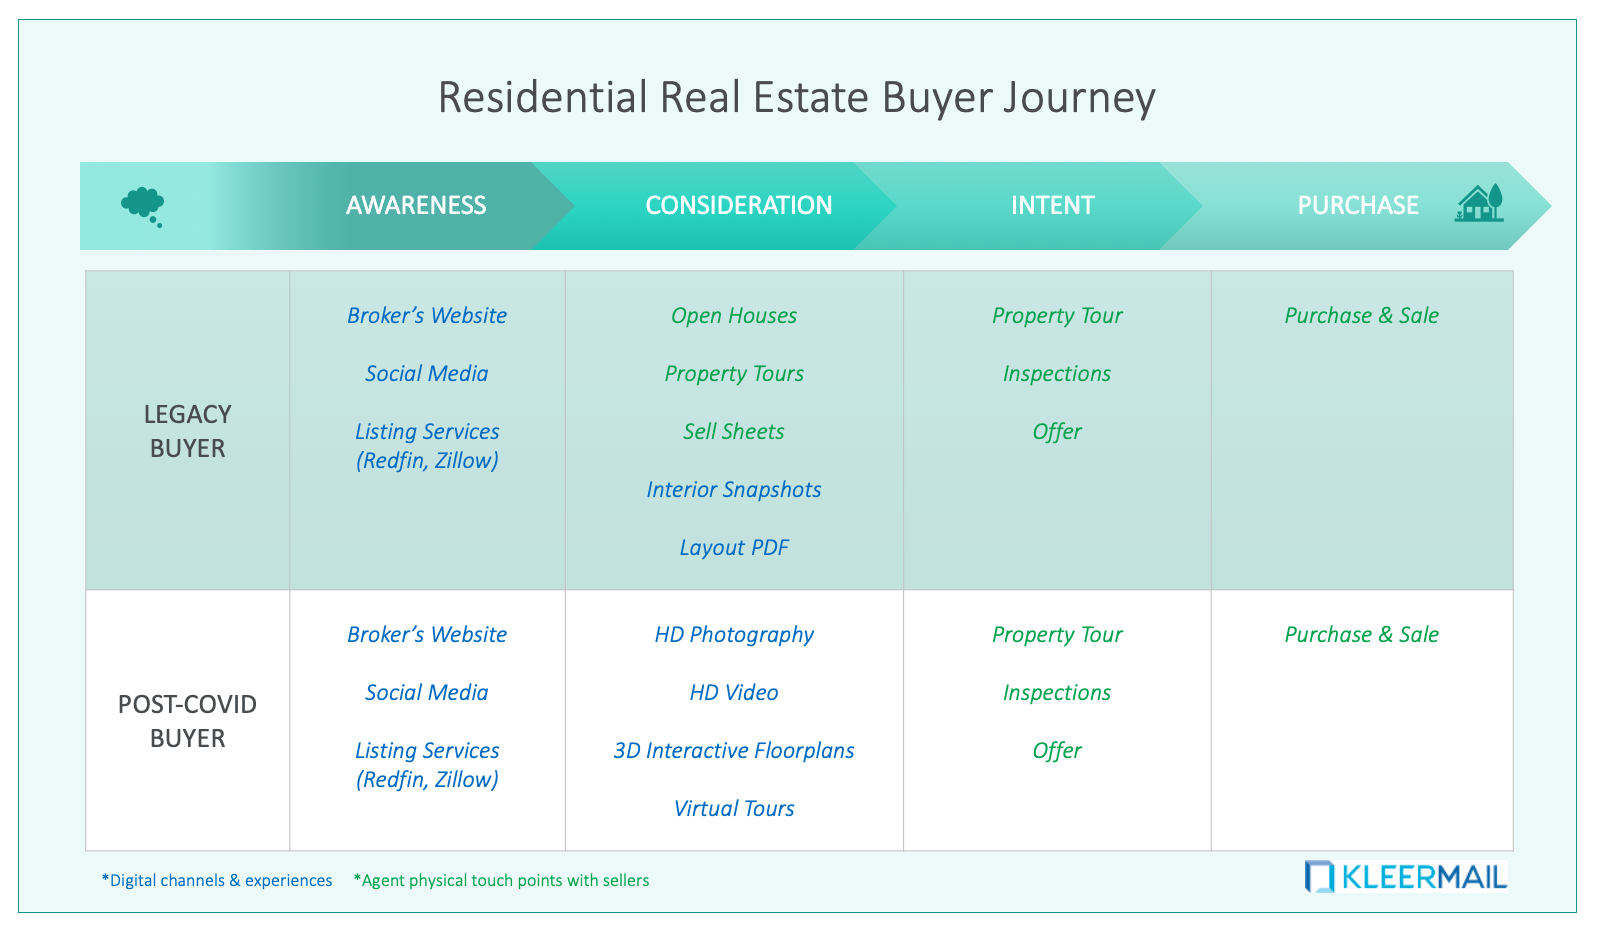 Residential Real Estate Buyer Journey